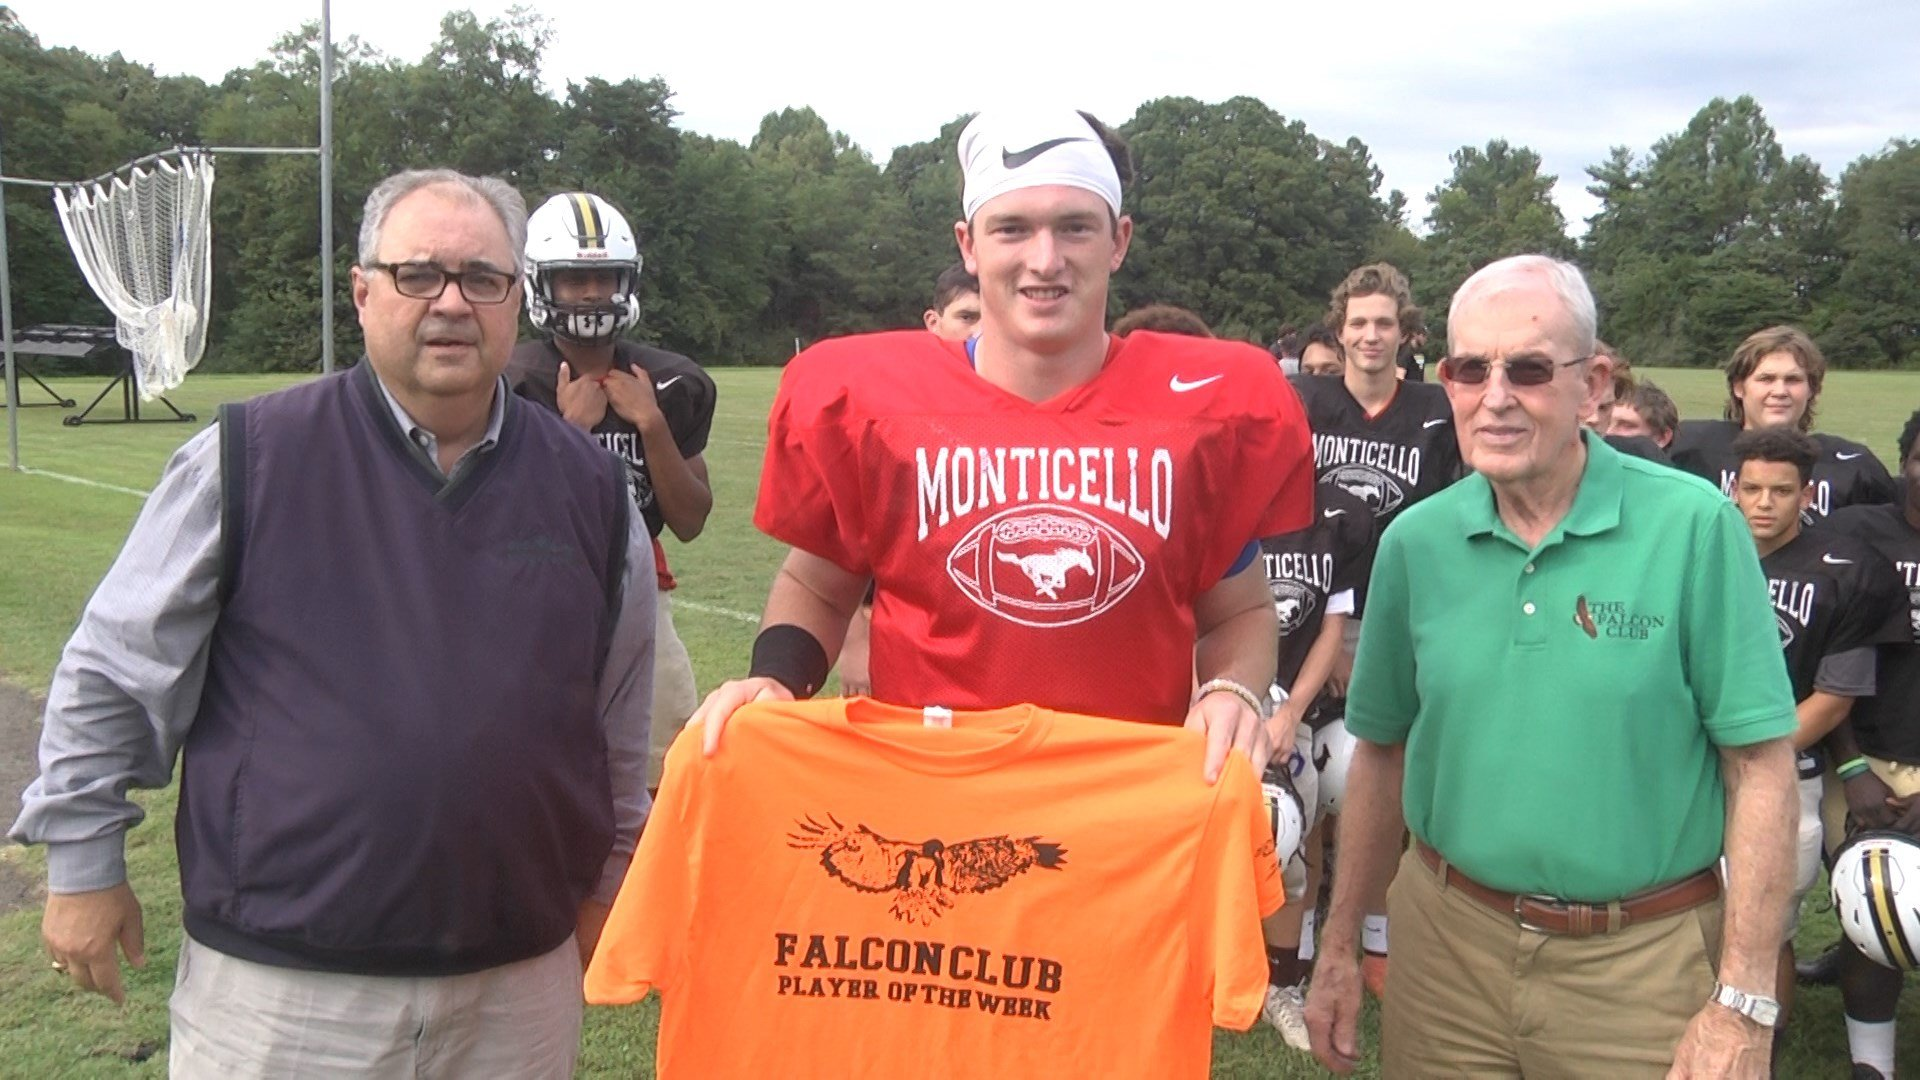 Kevin Jarrell is the Falcon Club Player of the Week